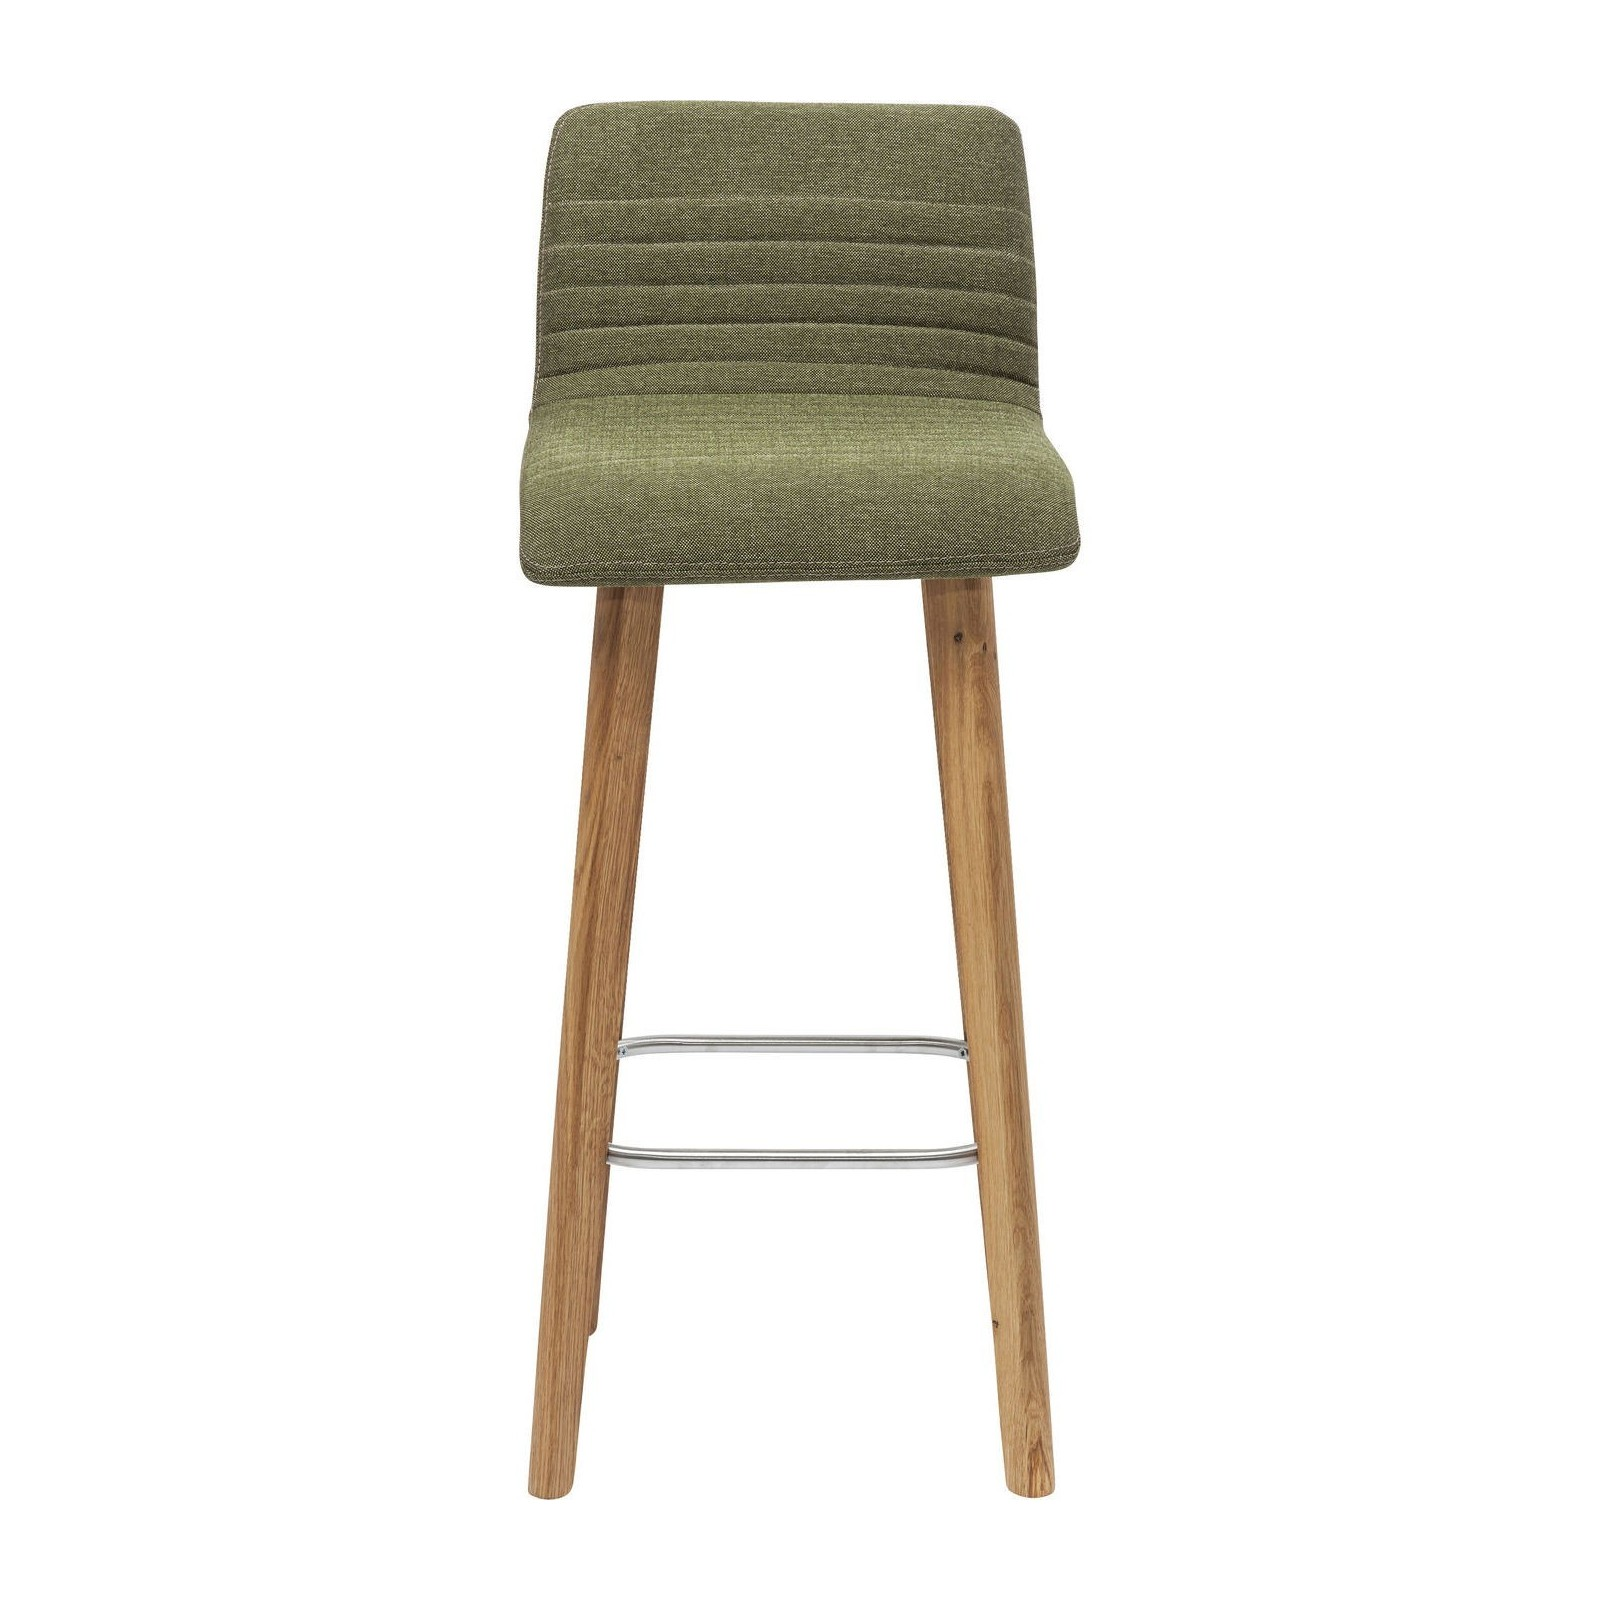 tabouret de bar scandinave vert lara kare design. Black Bedroom Furniture Sets. Home Design Ideas